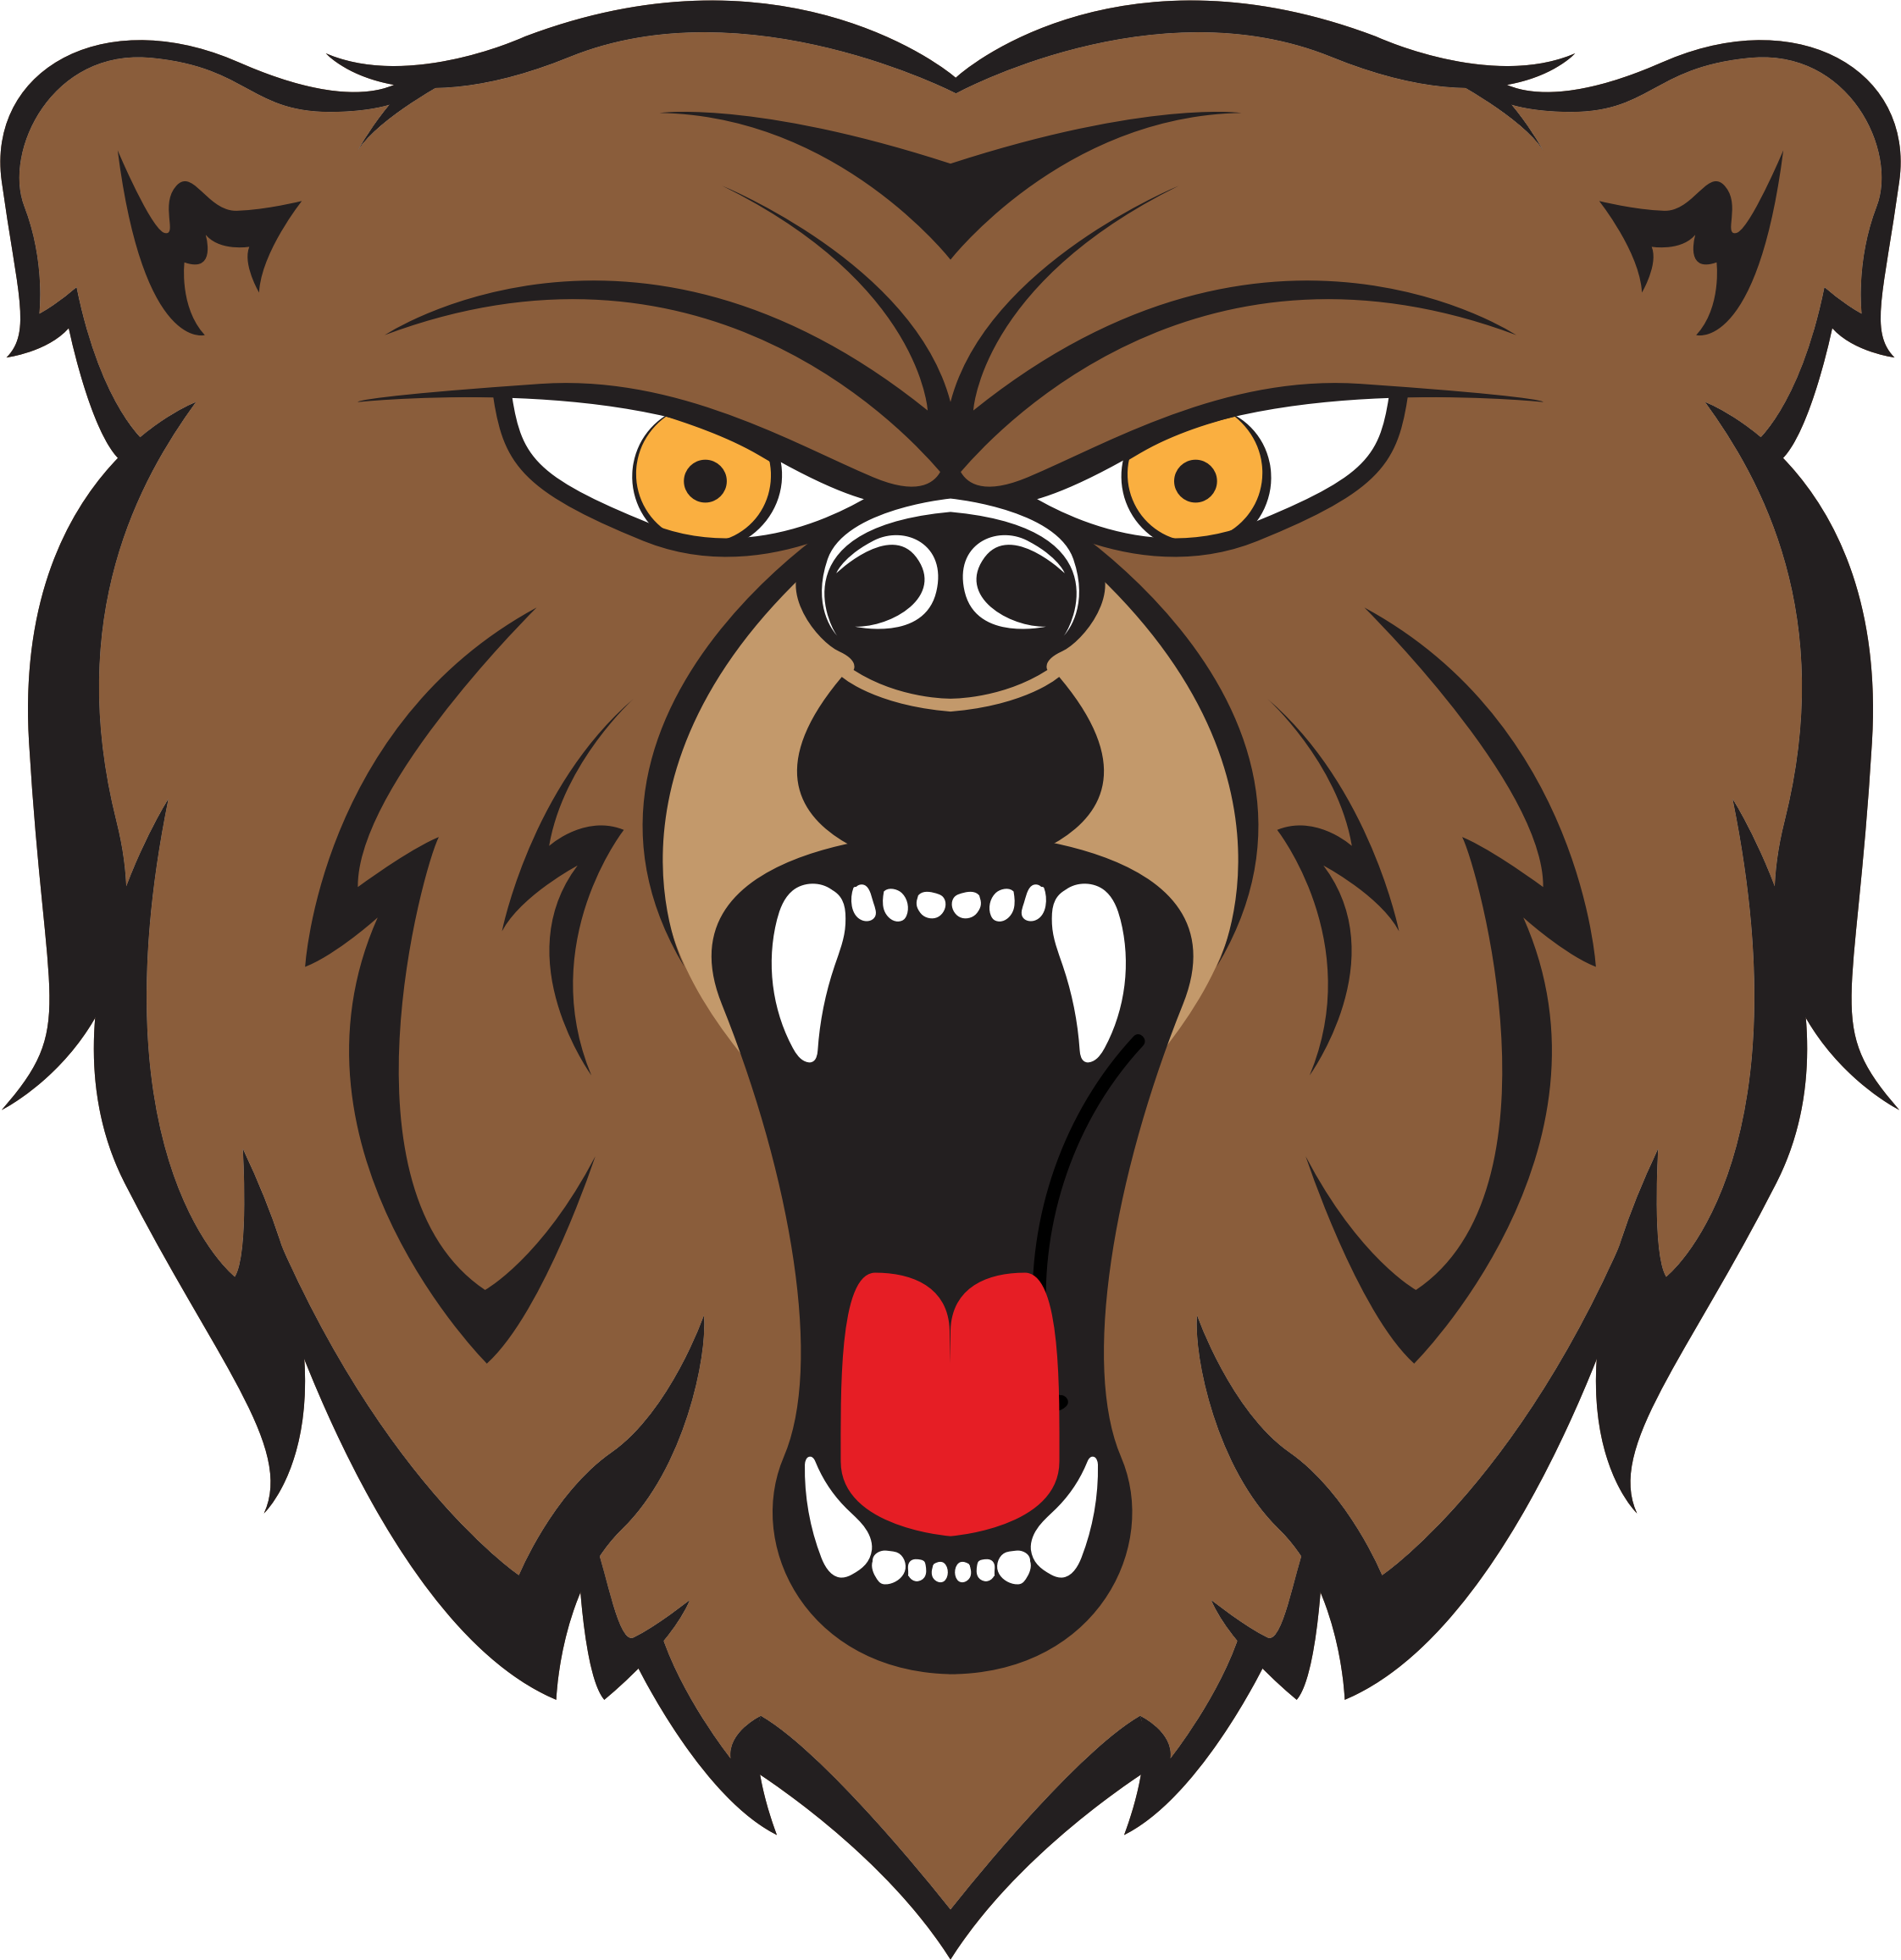 Angry bear png. By hulmdesign icons free